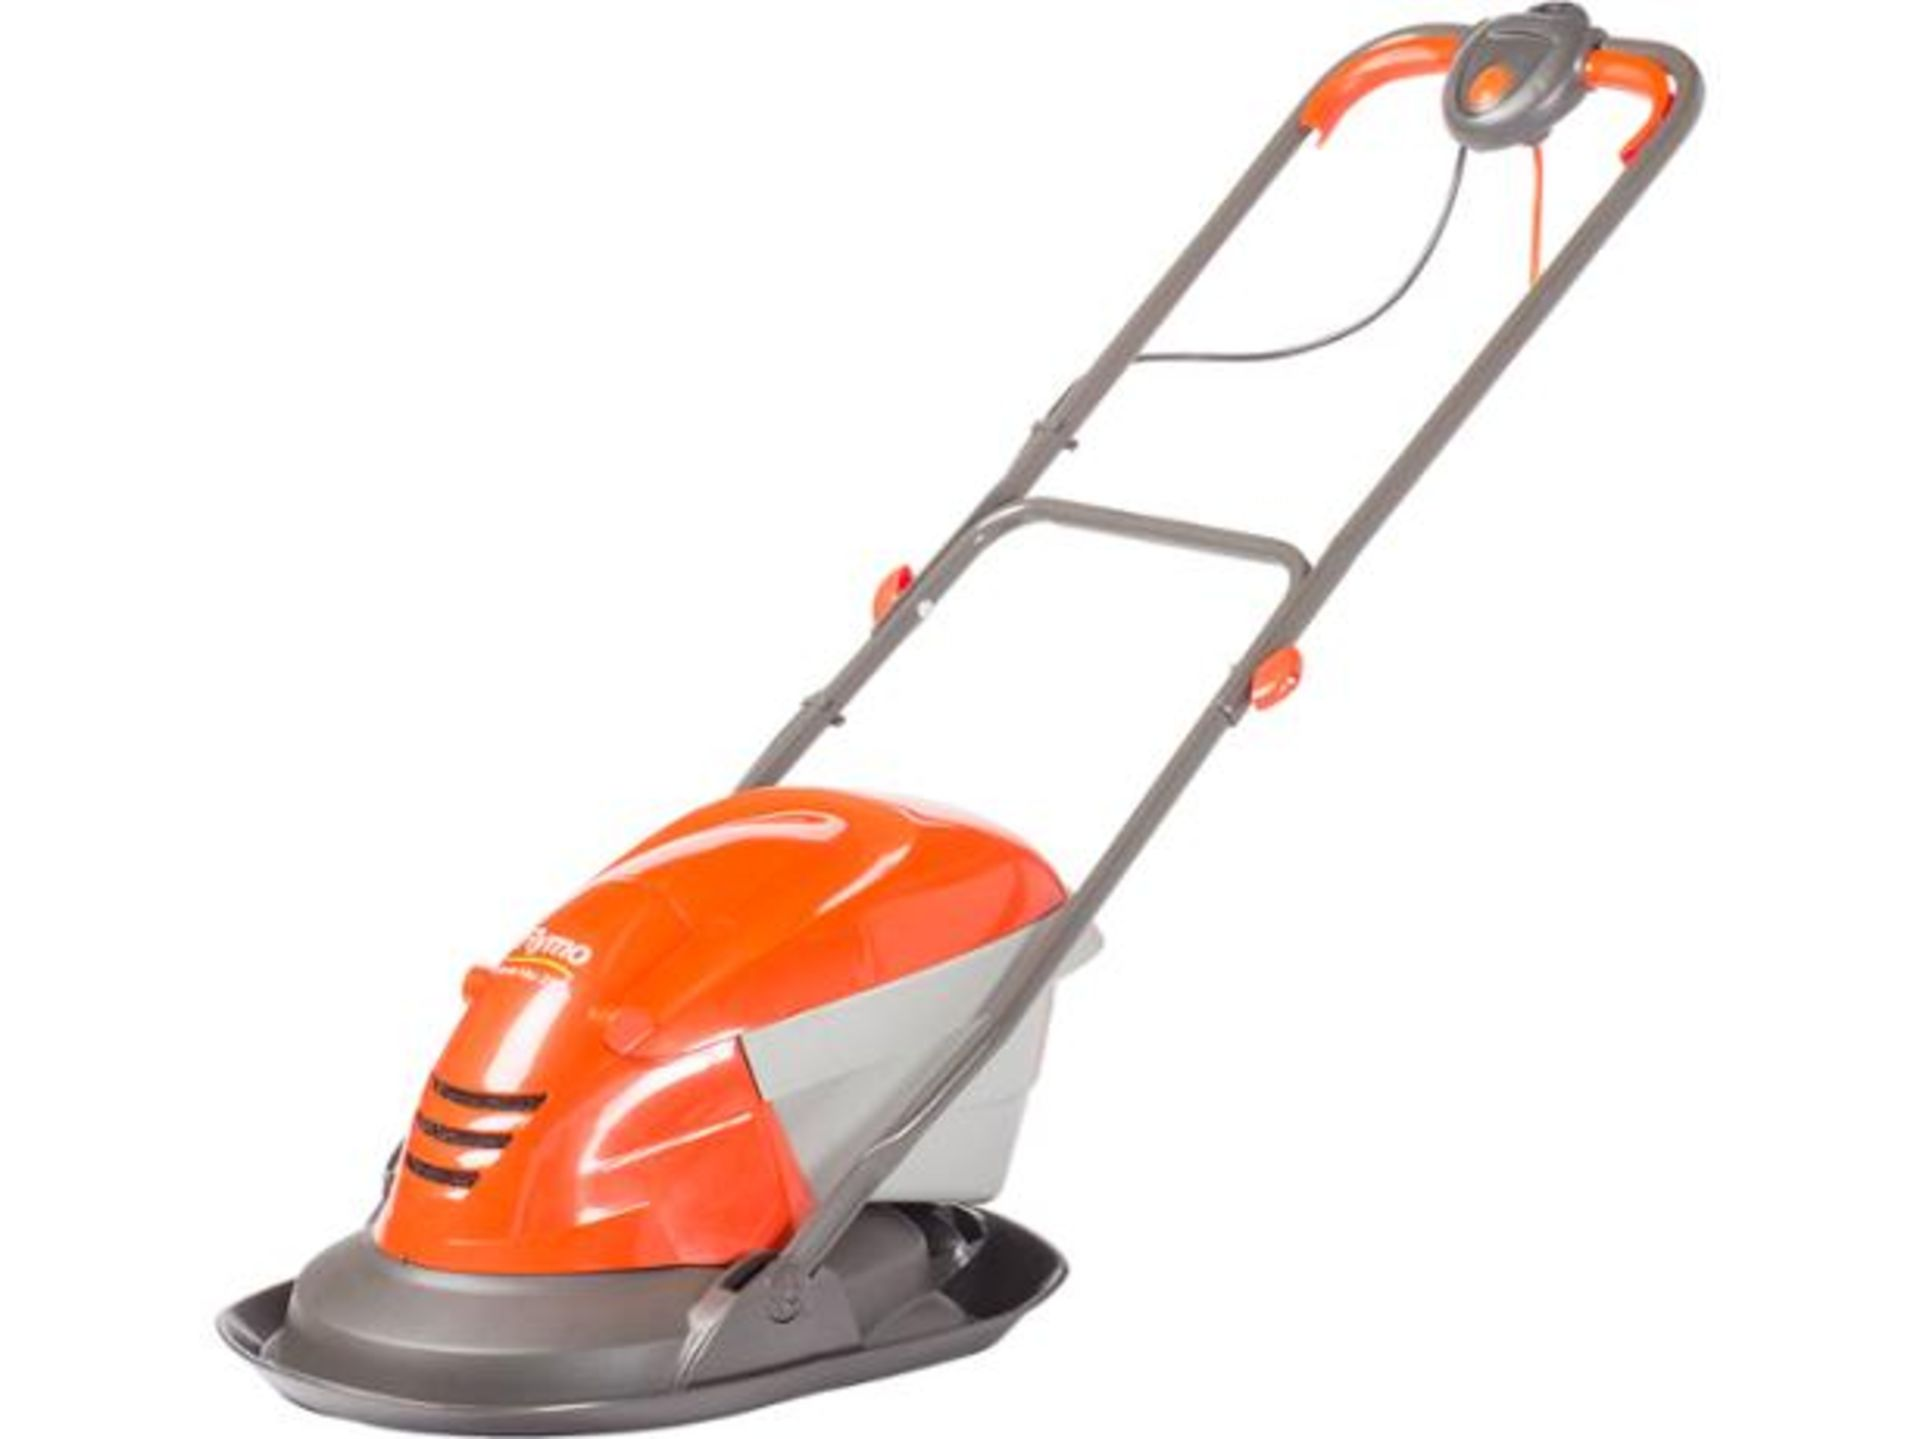 (P2) 1x Flymo HoverVac 250 RRP £80. Unit Appears Clean, Unused & As New. - Image 2 of 5